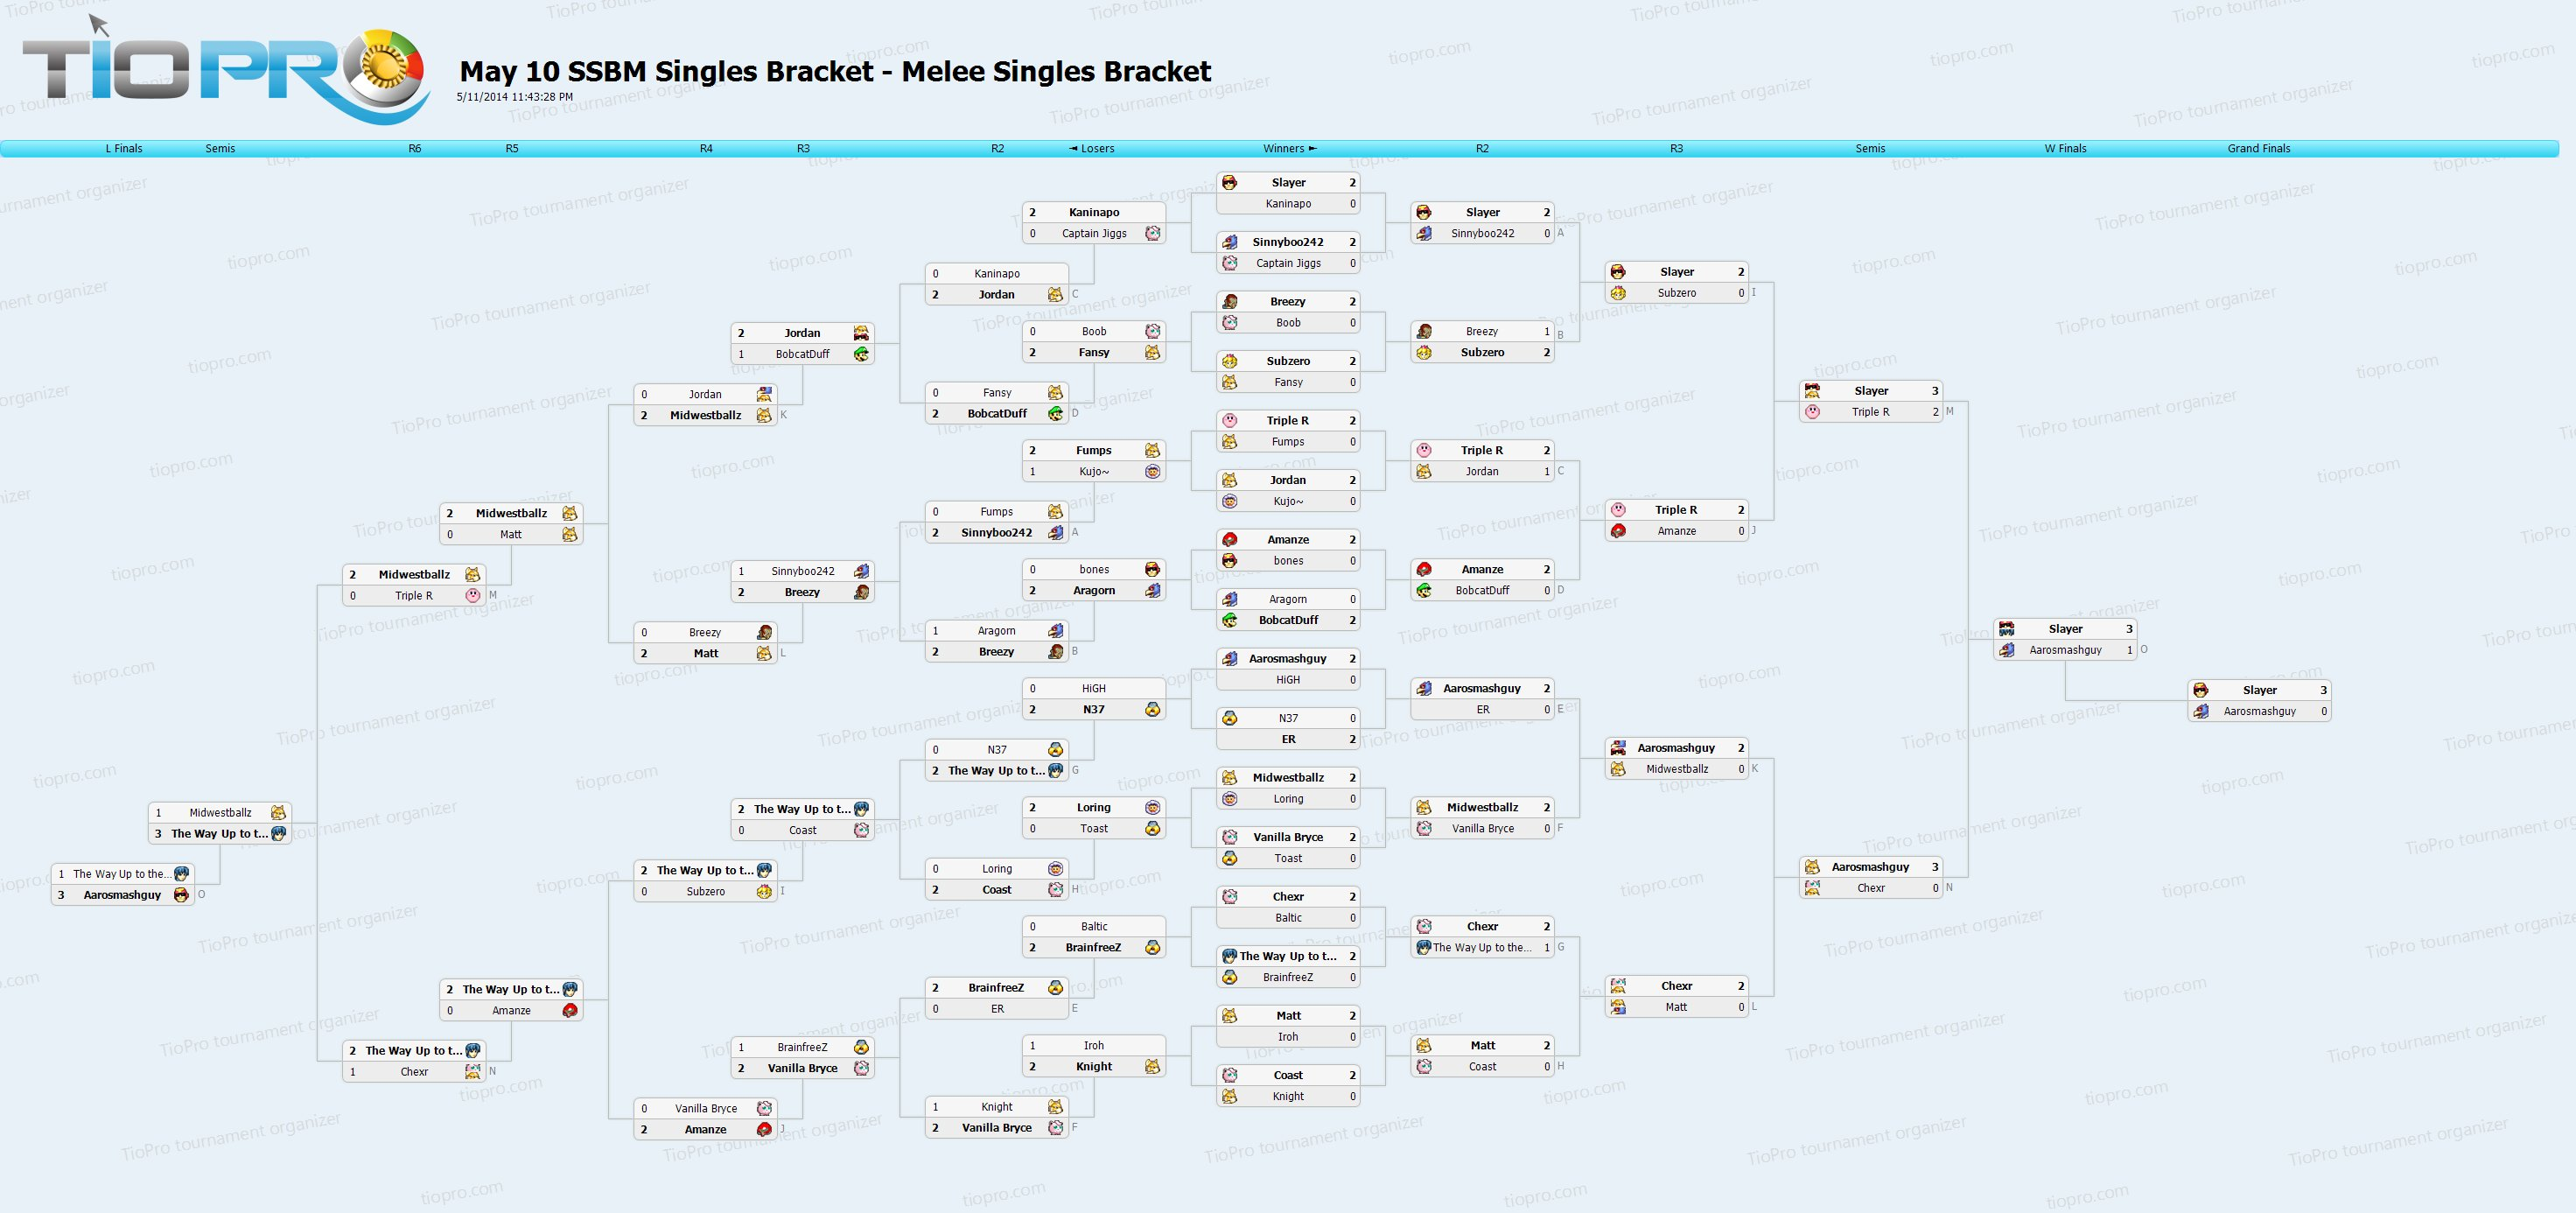 U of M Triweekly (May 10th, 2014) SSBM Singles Bracket